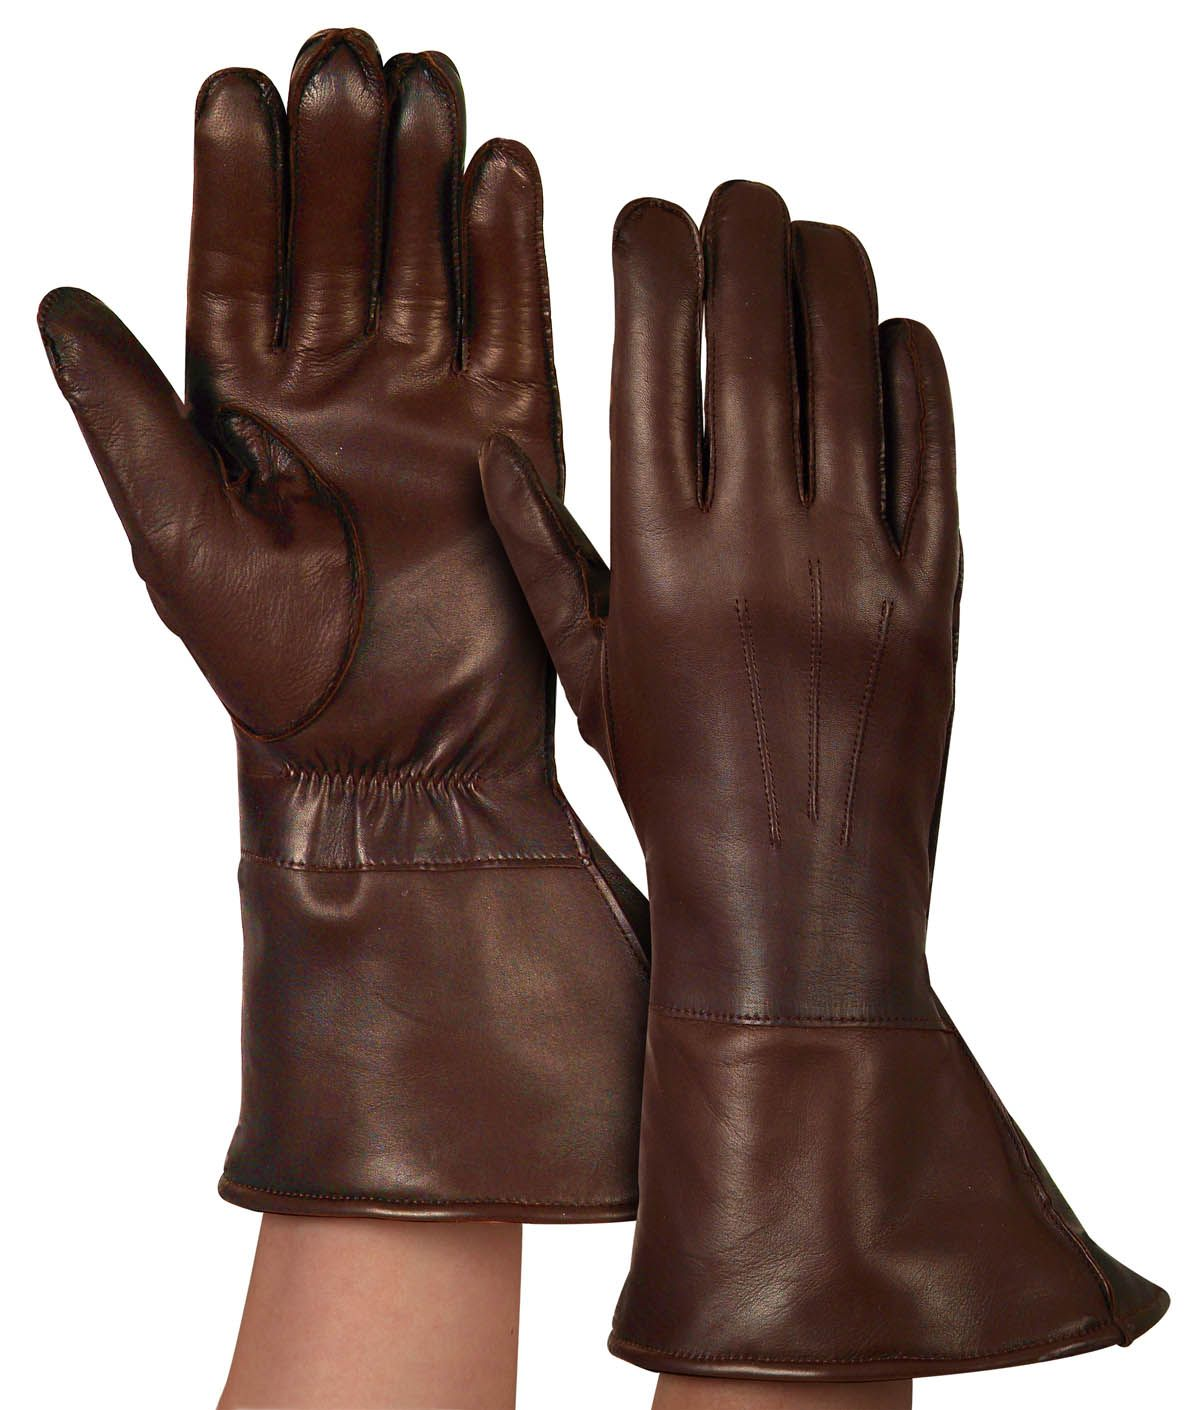 Leather motorcycle skeleton gloves - Chester Jefferies The Vincent Gloves Made In England Available In 39 Colours Motorcycle Glovesleather